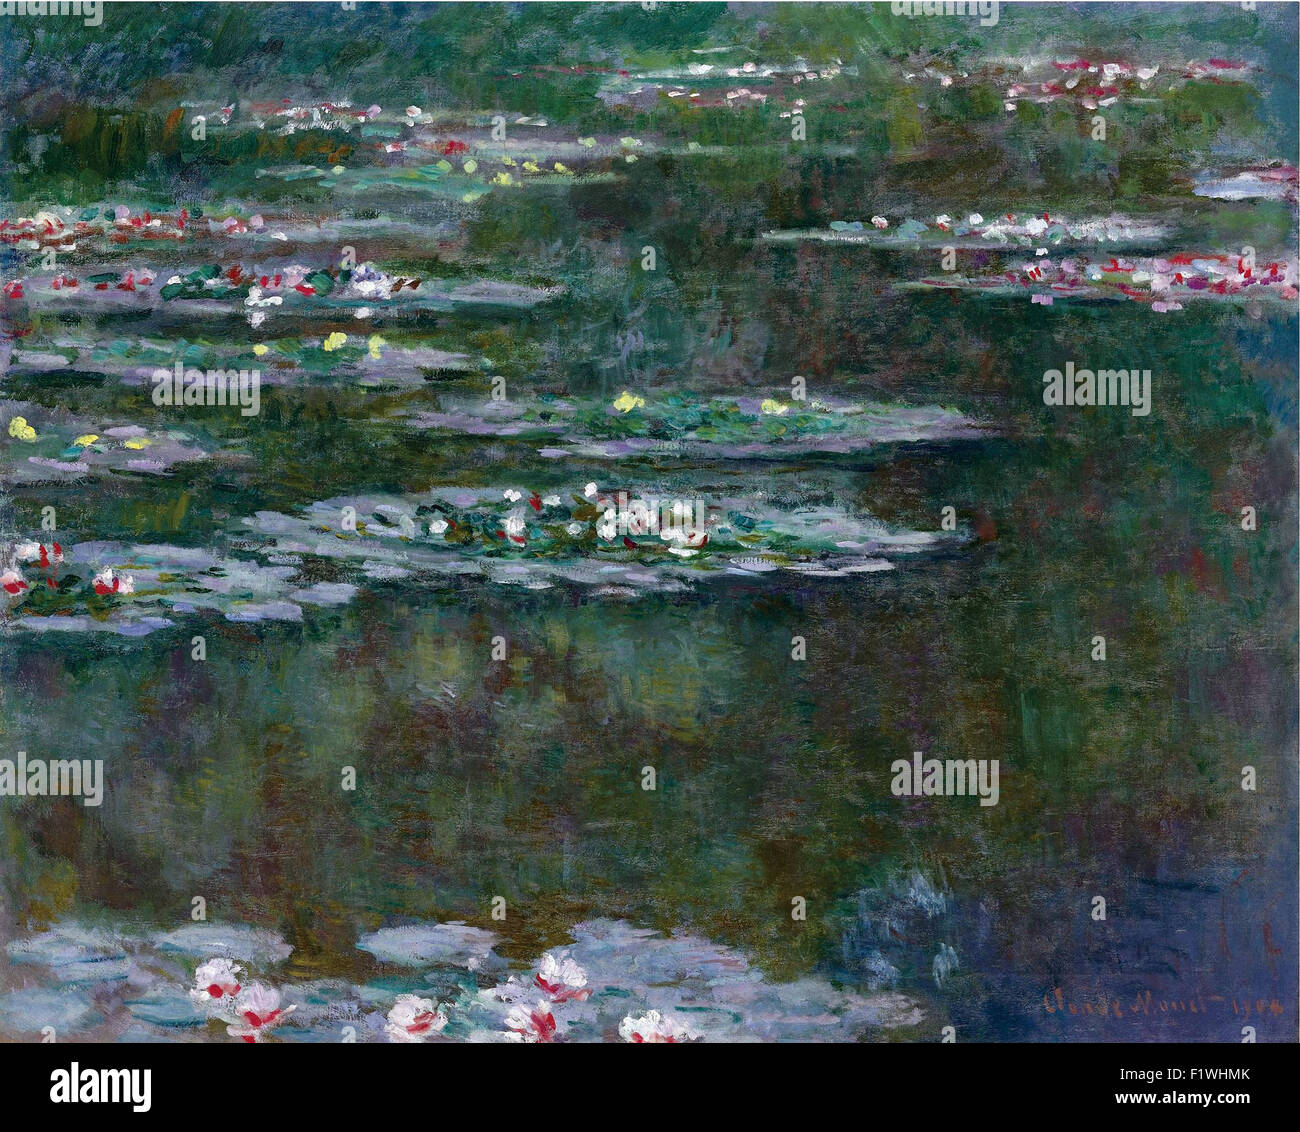 Claude Monet - Nymphéas 12 - Stock Image